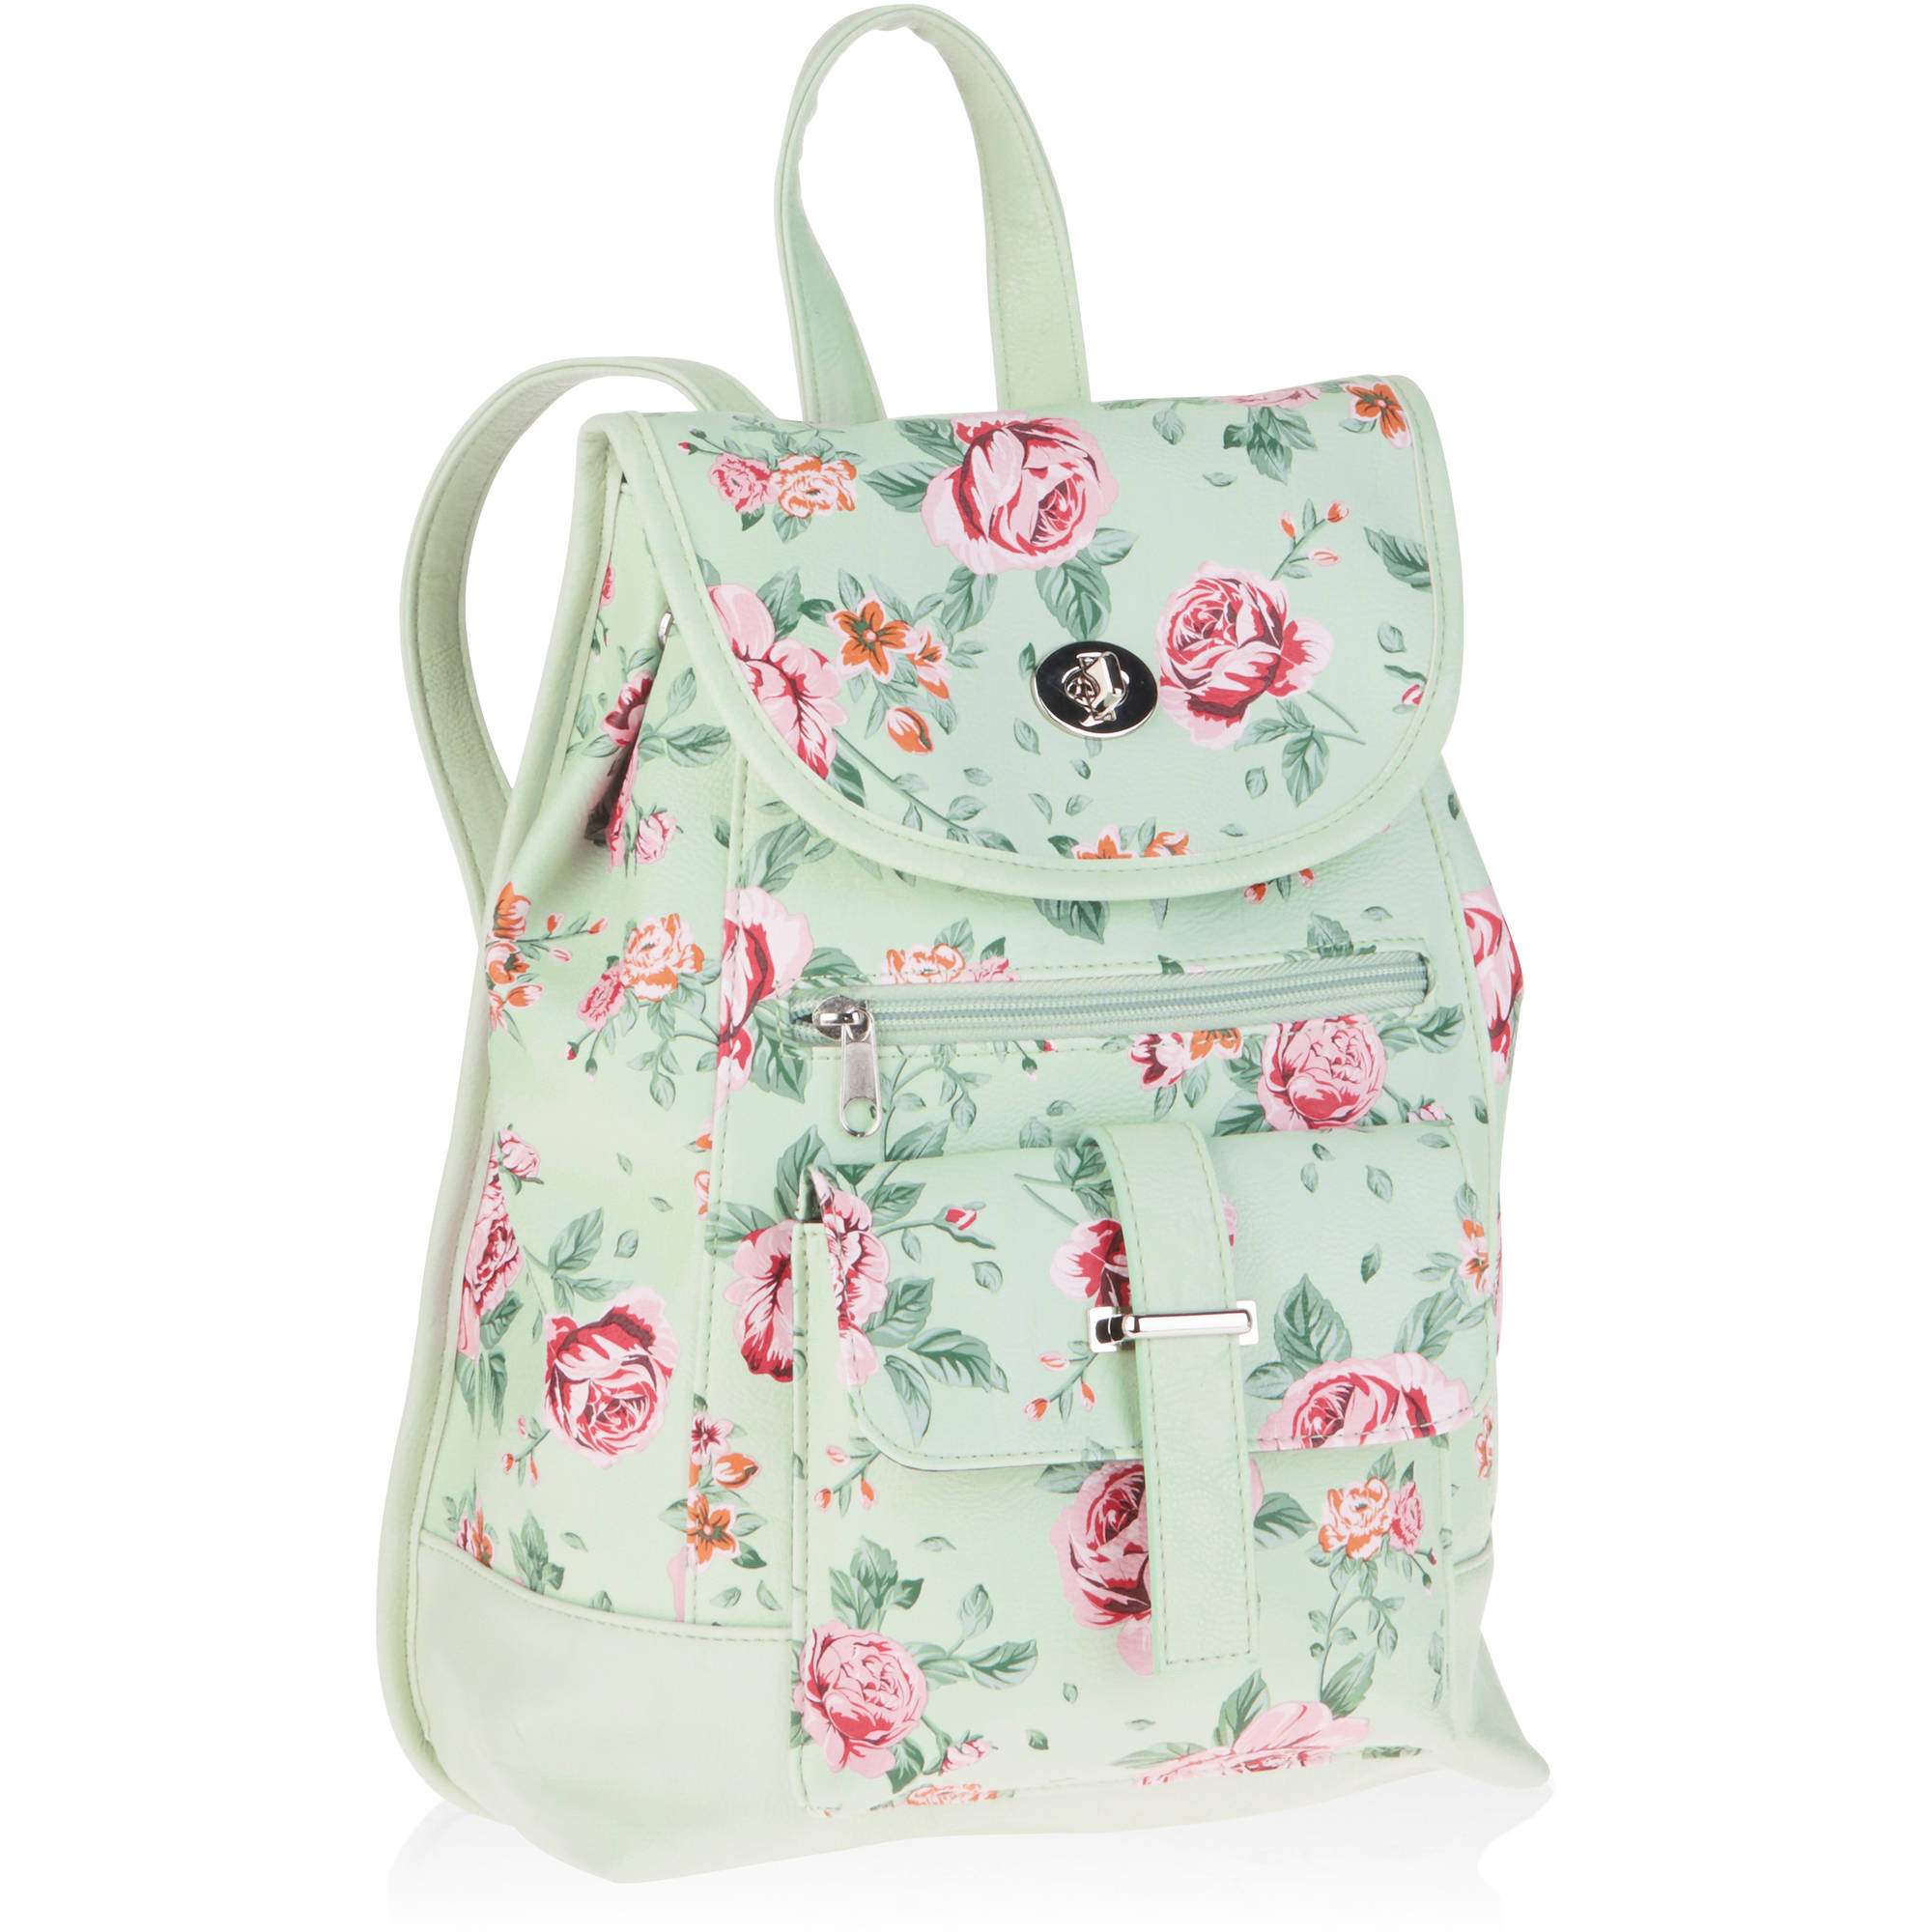 No Boundaries Women's Printed Backpack